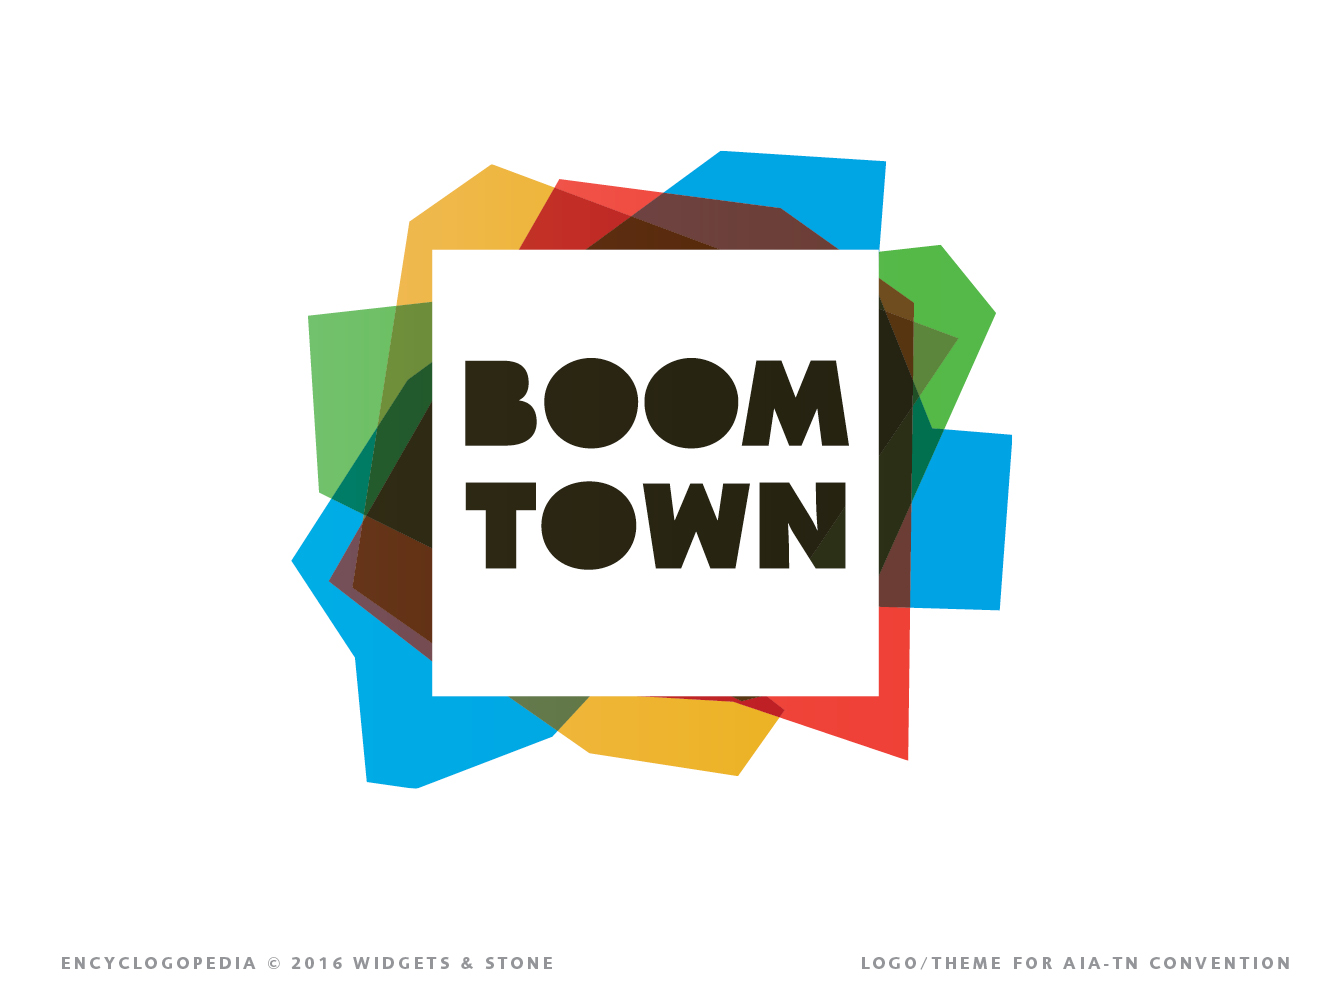 Copy of Boom Town brand concept logo